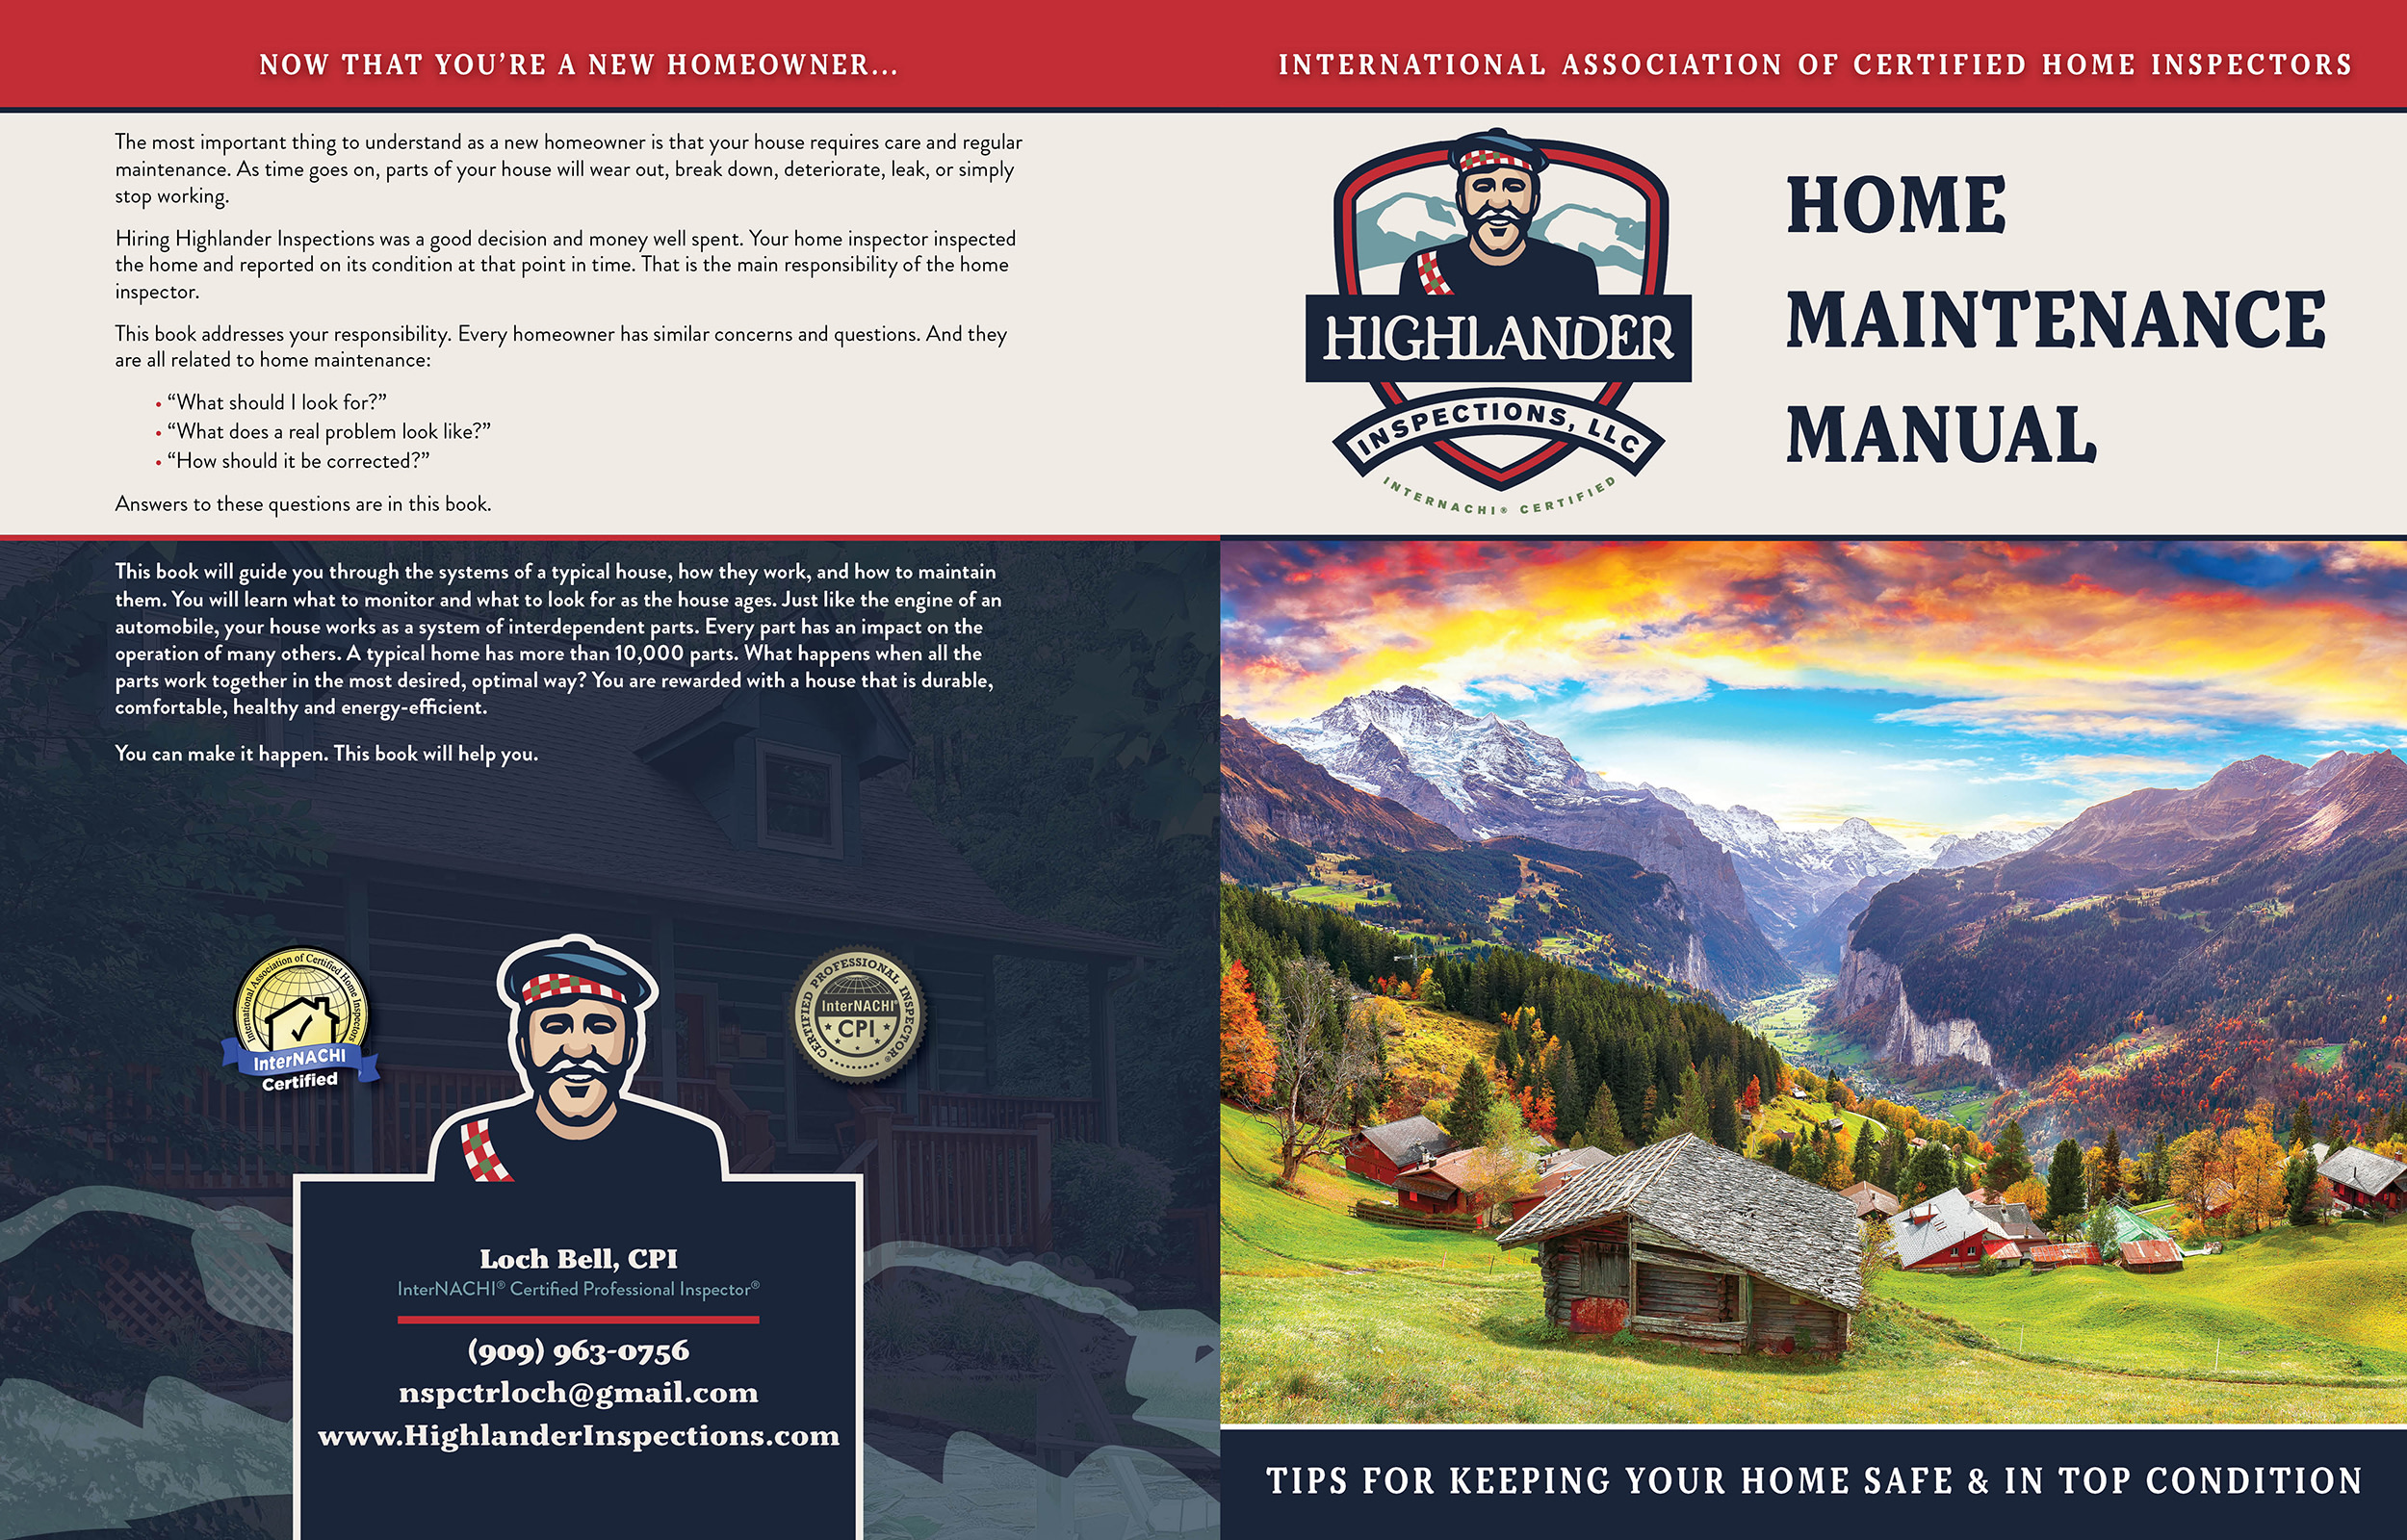 Custom Home Maintenance Book for Highlander Inspections